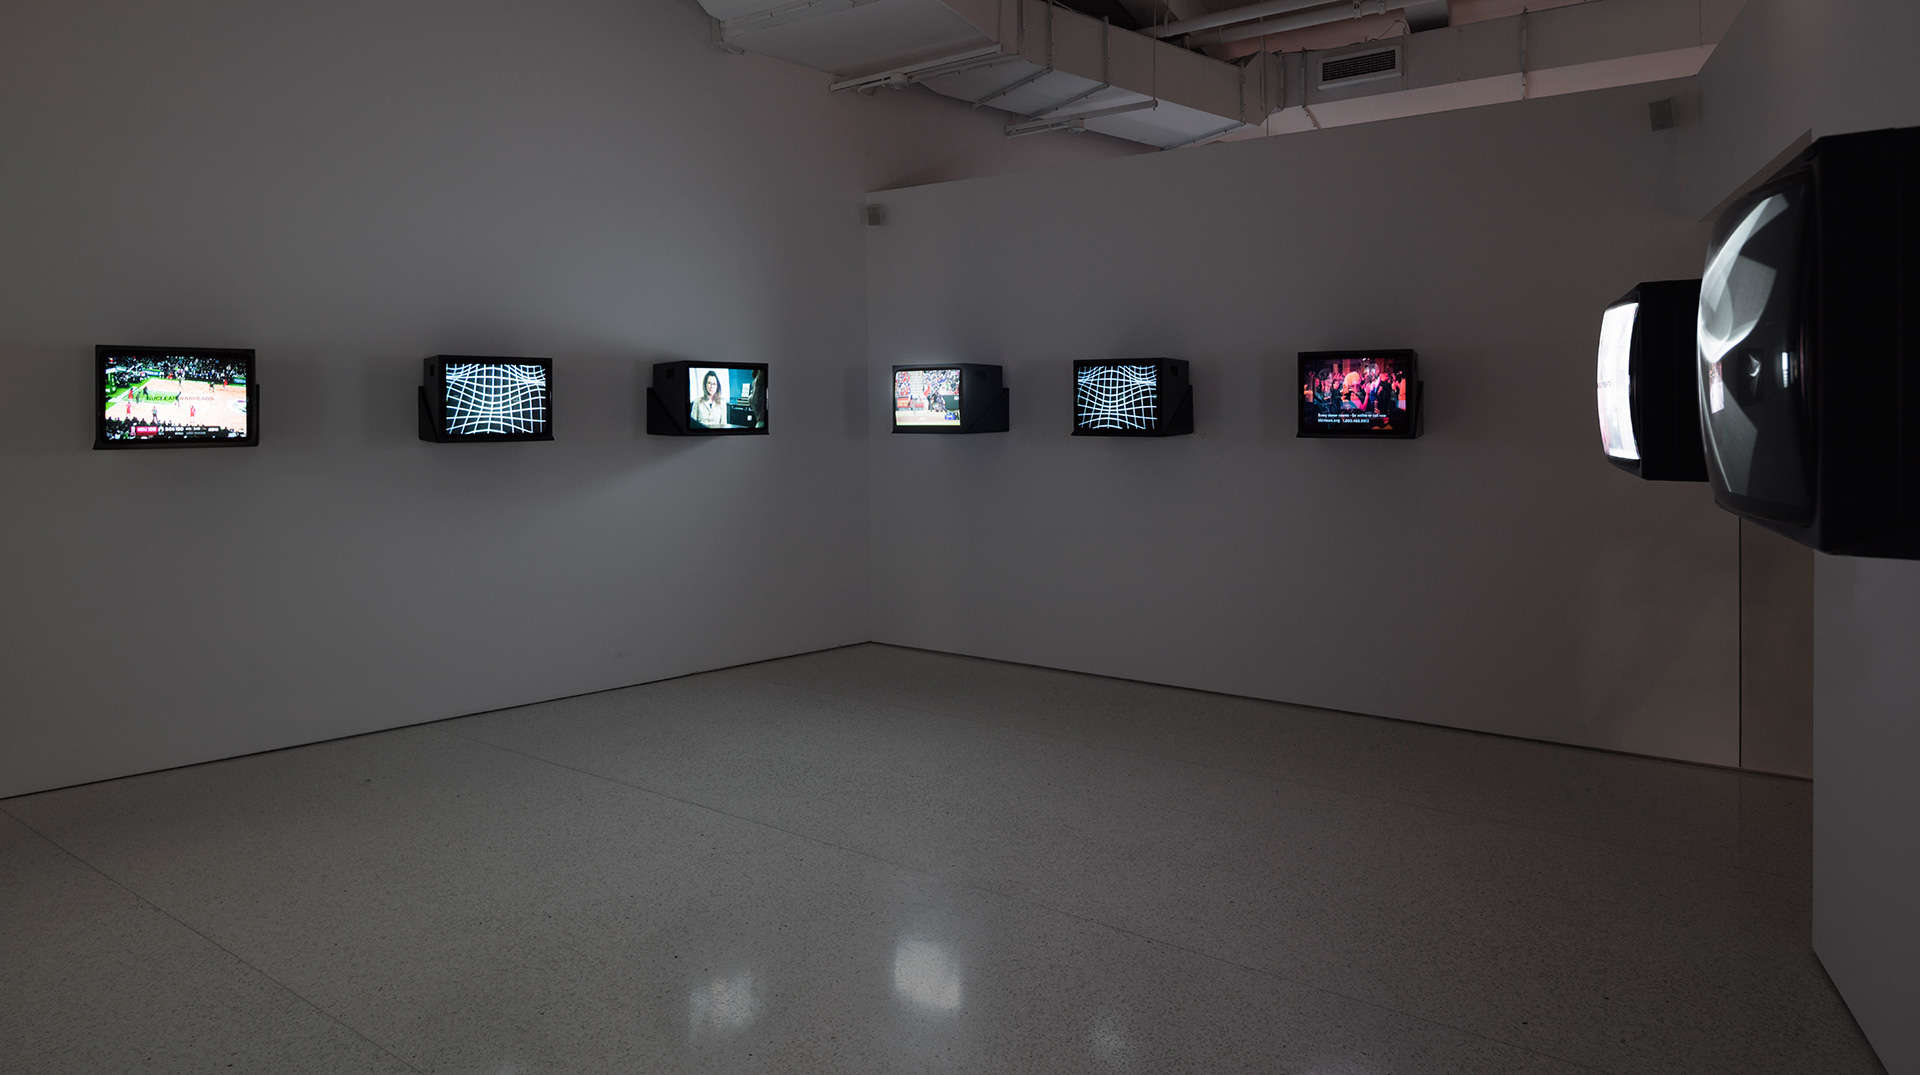 Aggressive Witness - Active Participant, 1990, live television broadcast on 8 monitors, vinyl lettering; black and white computer-generated film on 4 monitors; 19:41 min with soundtrack by Stuart Argabright. Installation view of Gretchen Bender: So Much Deathless at Red Bull Arts New York, 2019| Gretchen Bender | STIR